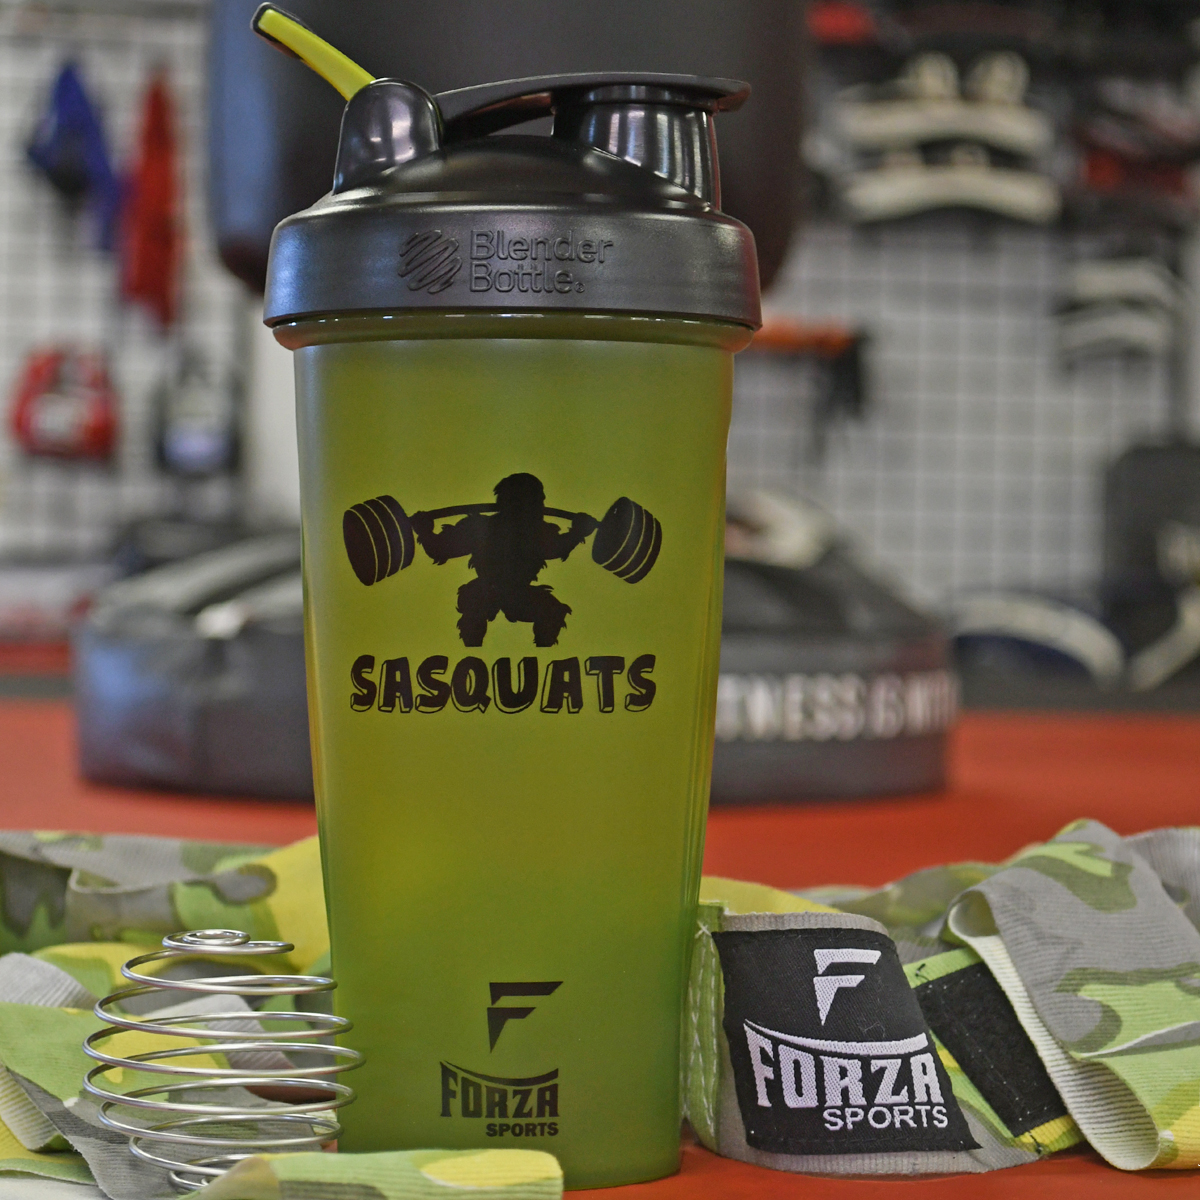 Blender-Bottle-x-Forza-Sports-Classic-28-oz-Shaker-Mixer-Cup-with-Loop-Top thumbnail 46